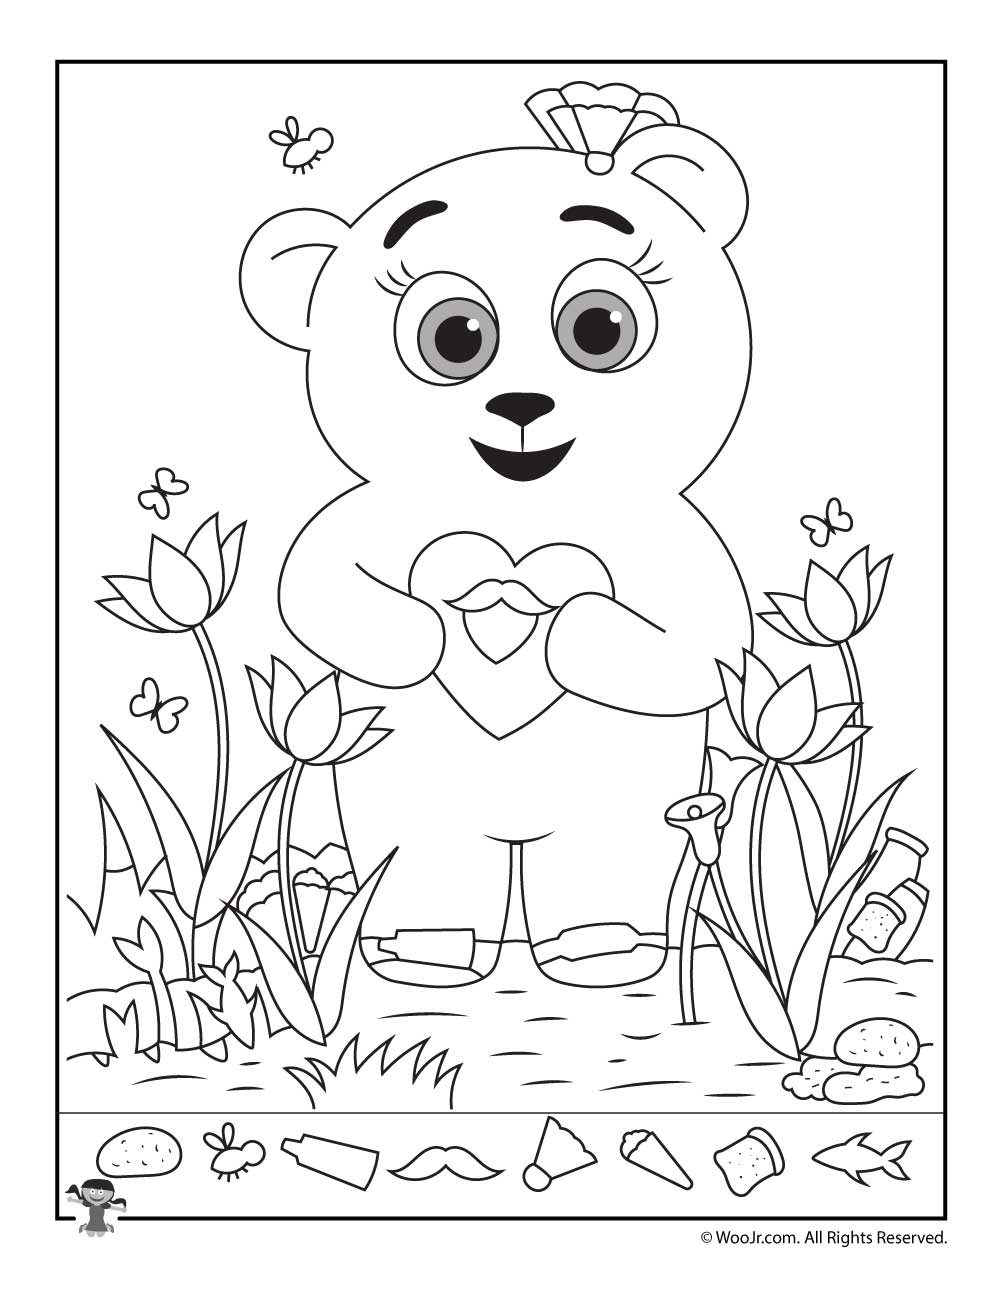 teddy bear hidden picture printable woo jr kids activities - Hidden Pictures For Kids